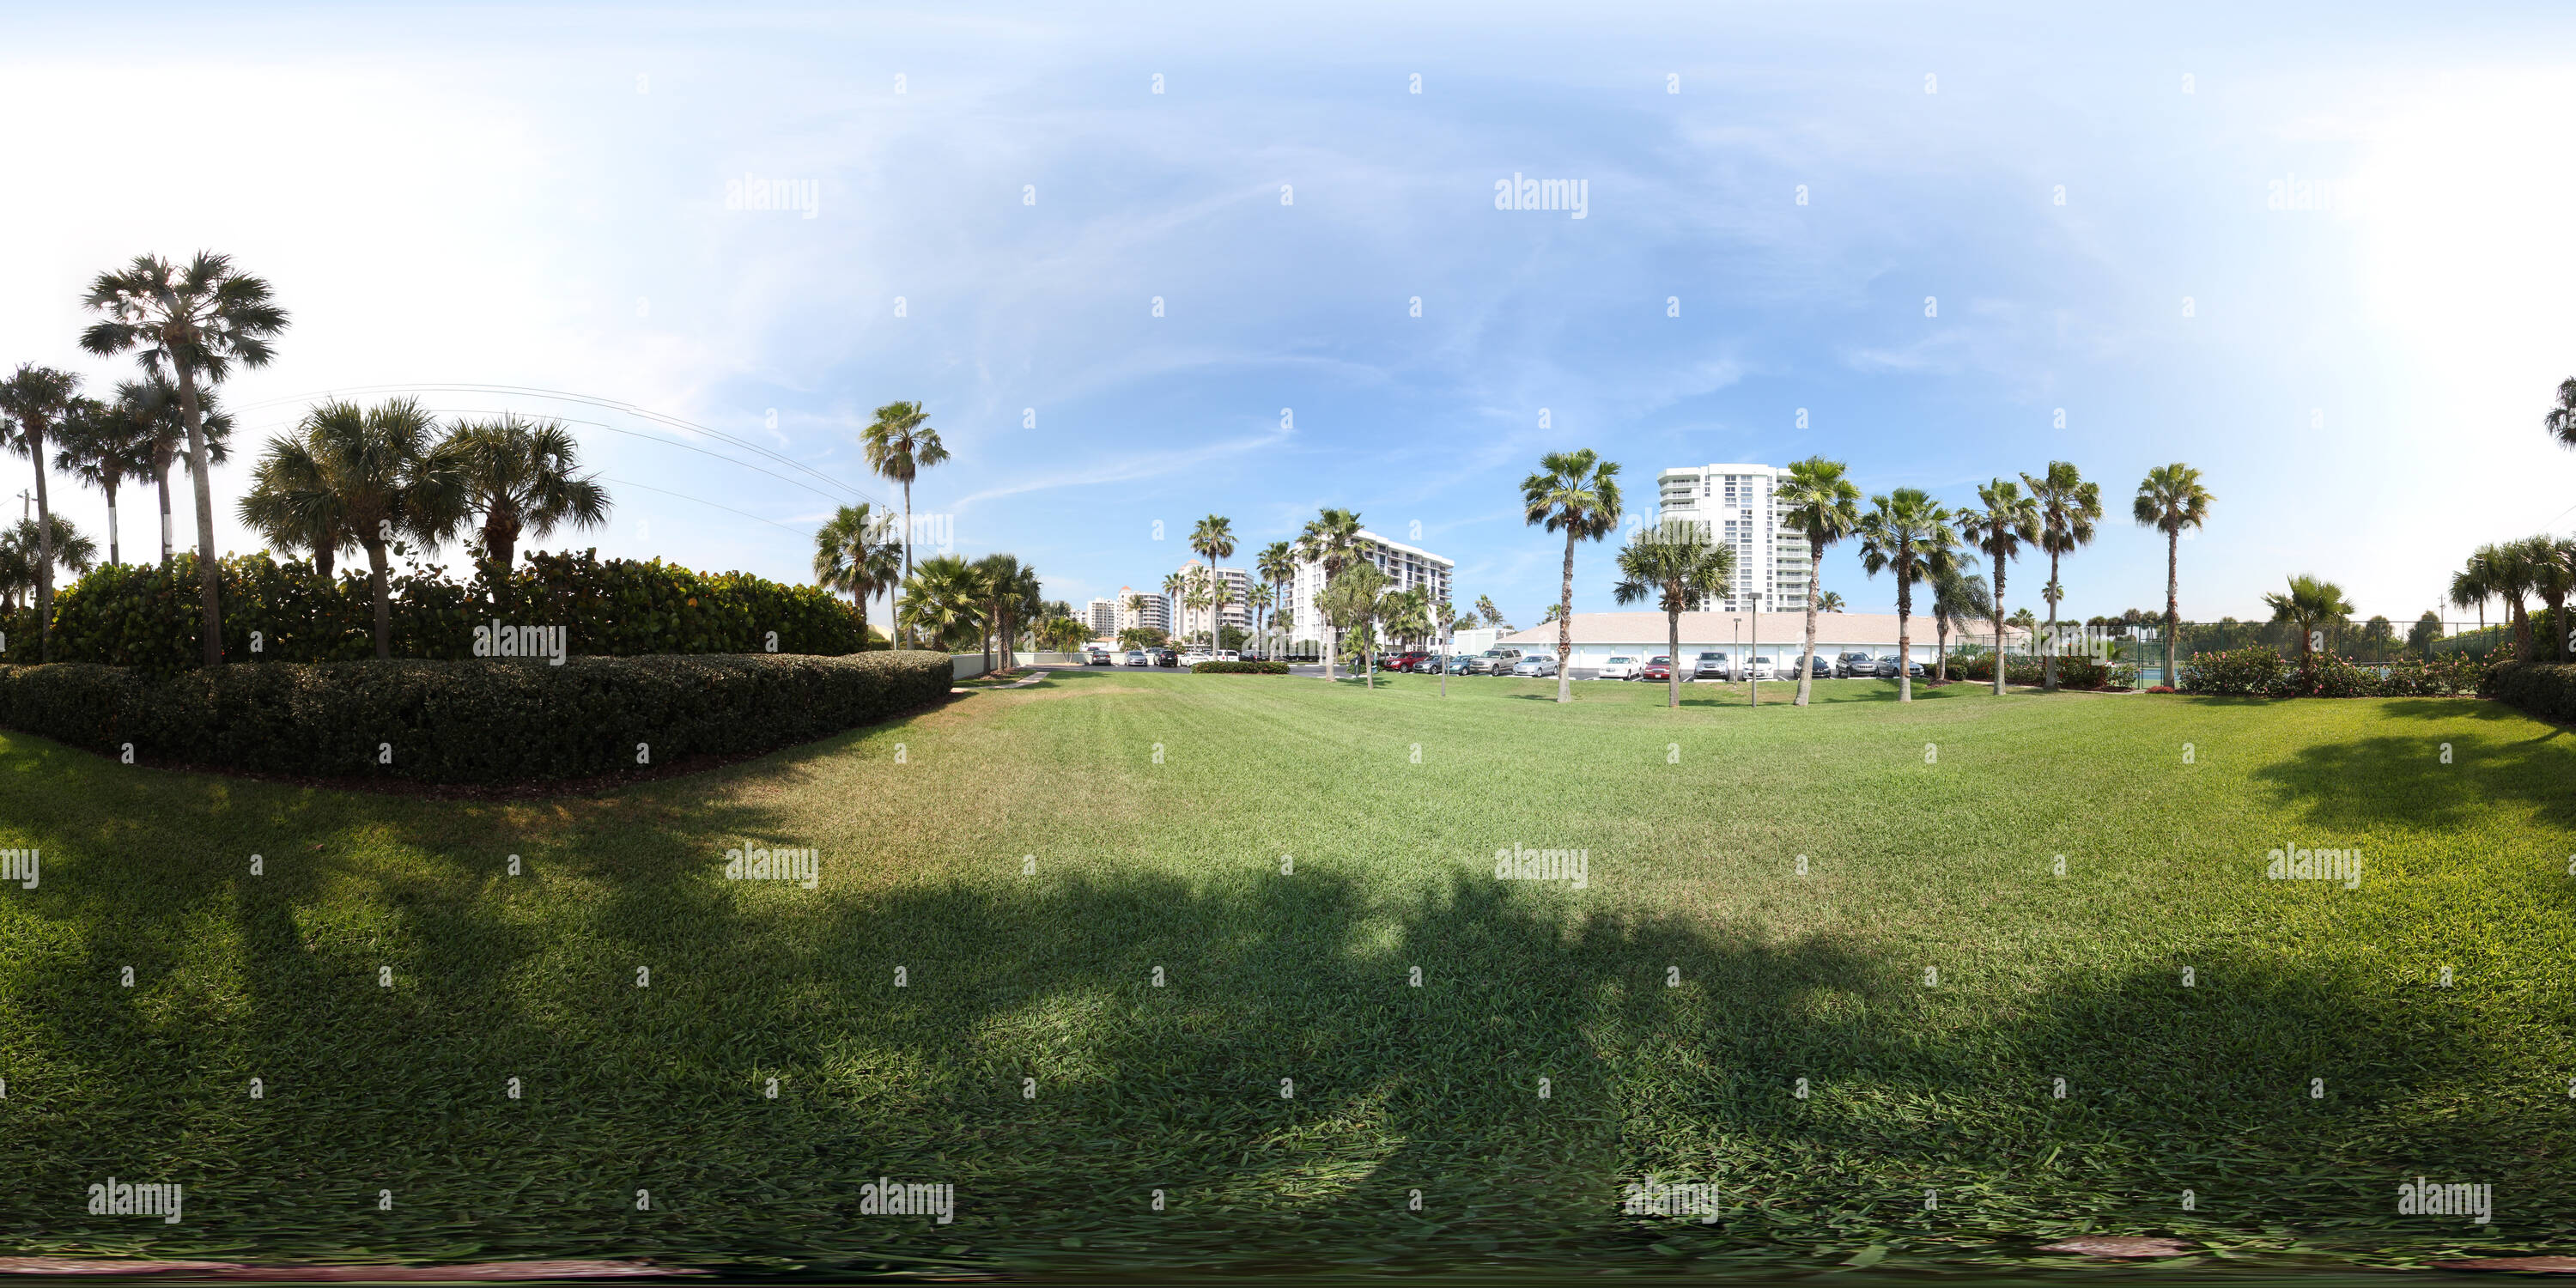 360 View of Aquanique Ocean Club West Lawn 223894029 - Alamy